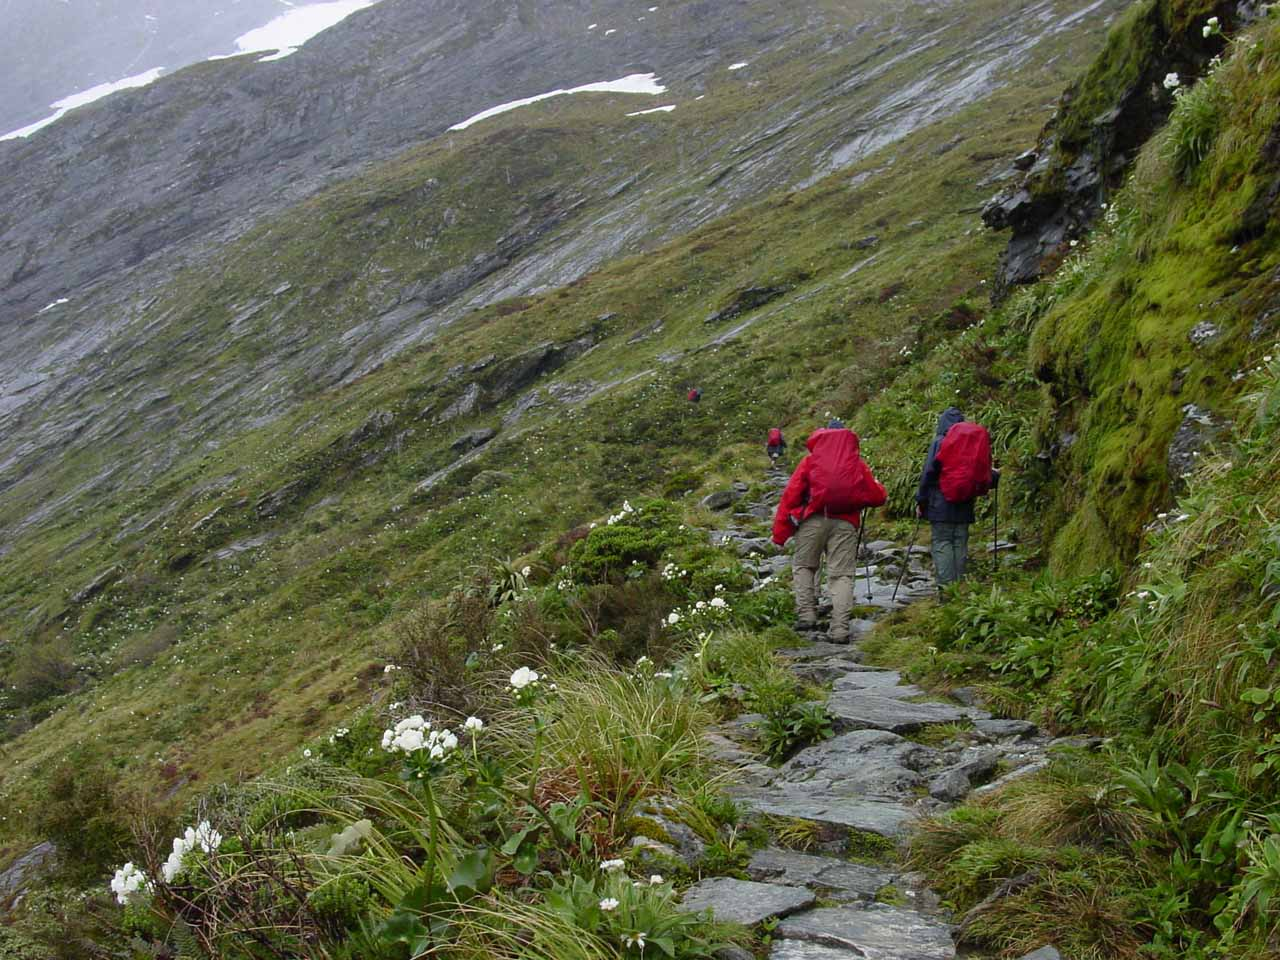 Making the ascent to Mackinnon Pass in foul weather